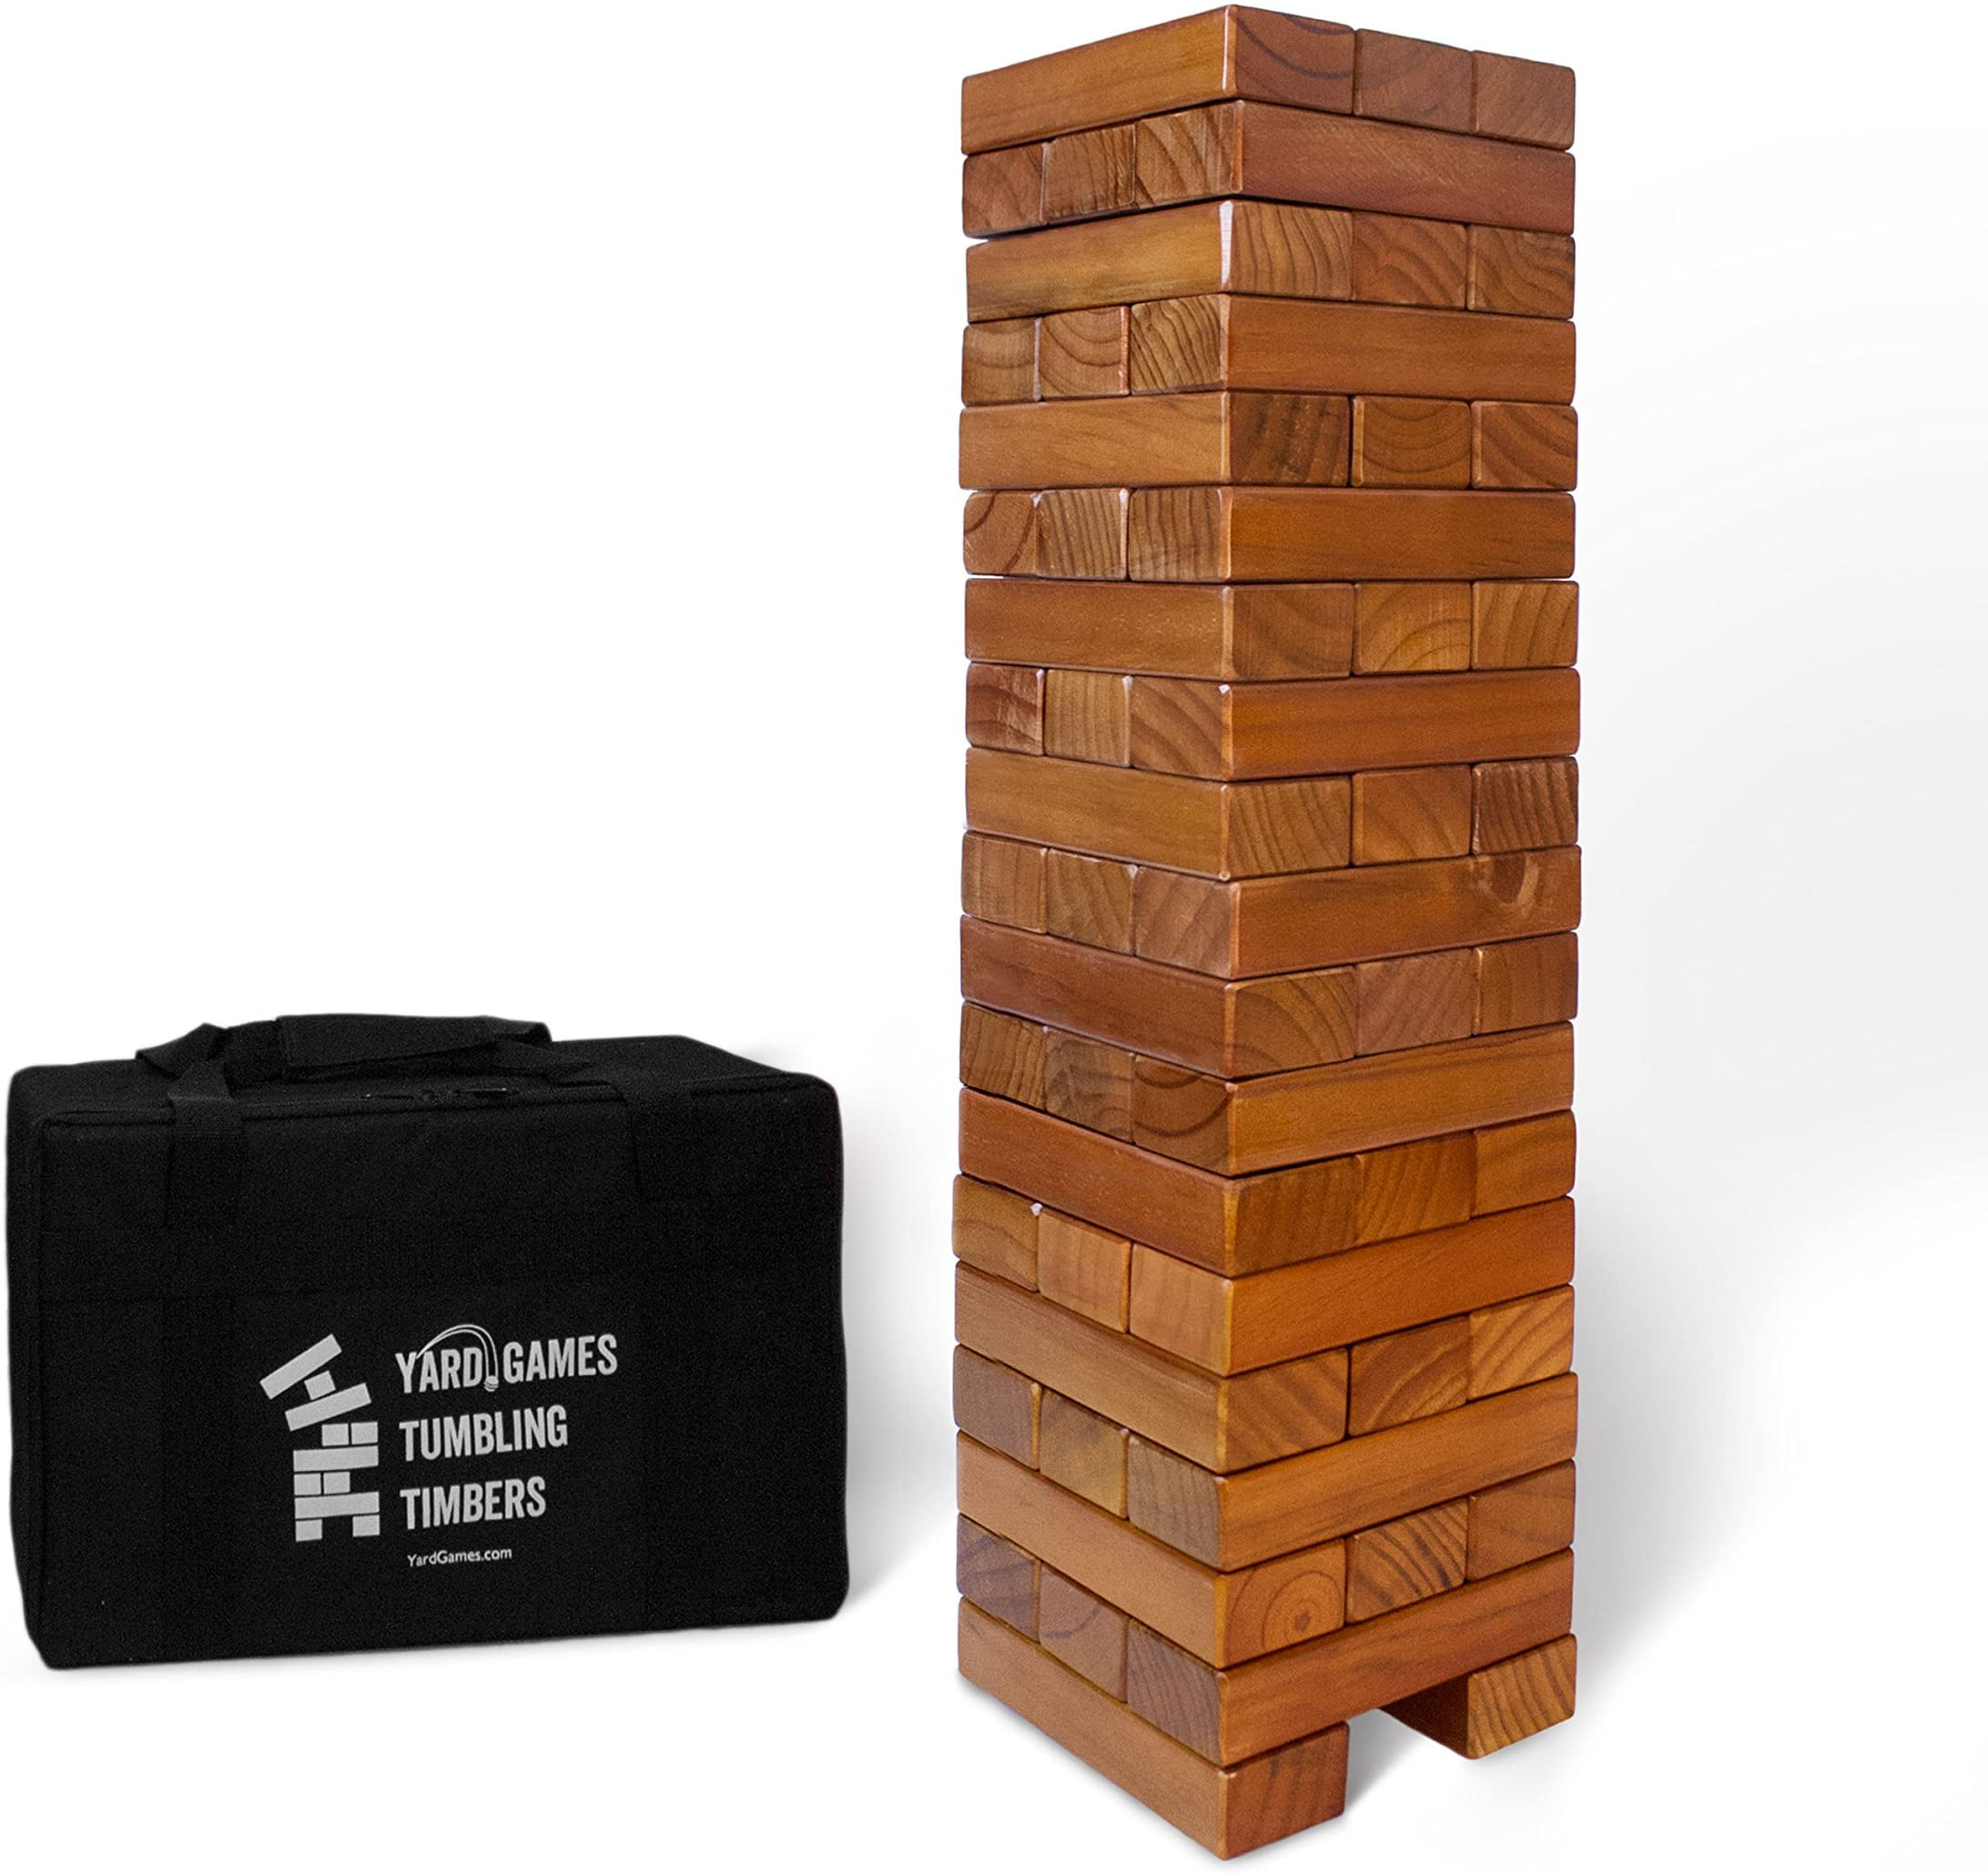 Giant Tumbling Timbers Stained and Finished Set with Durable Carrying Case